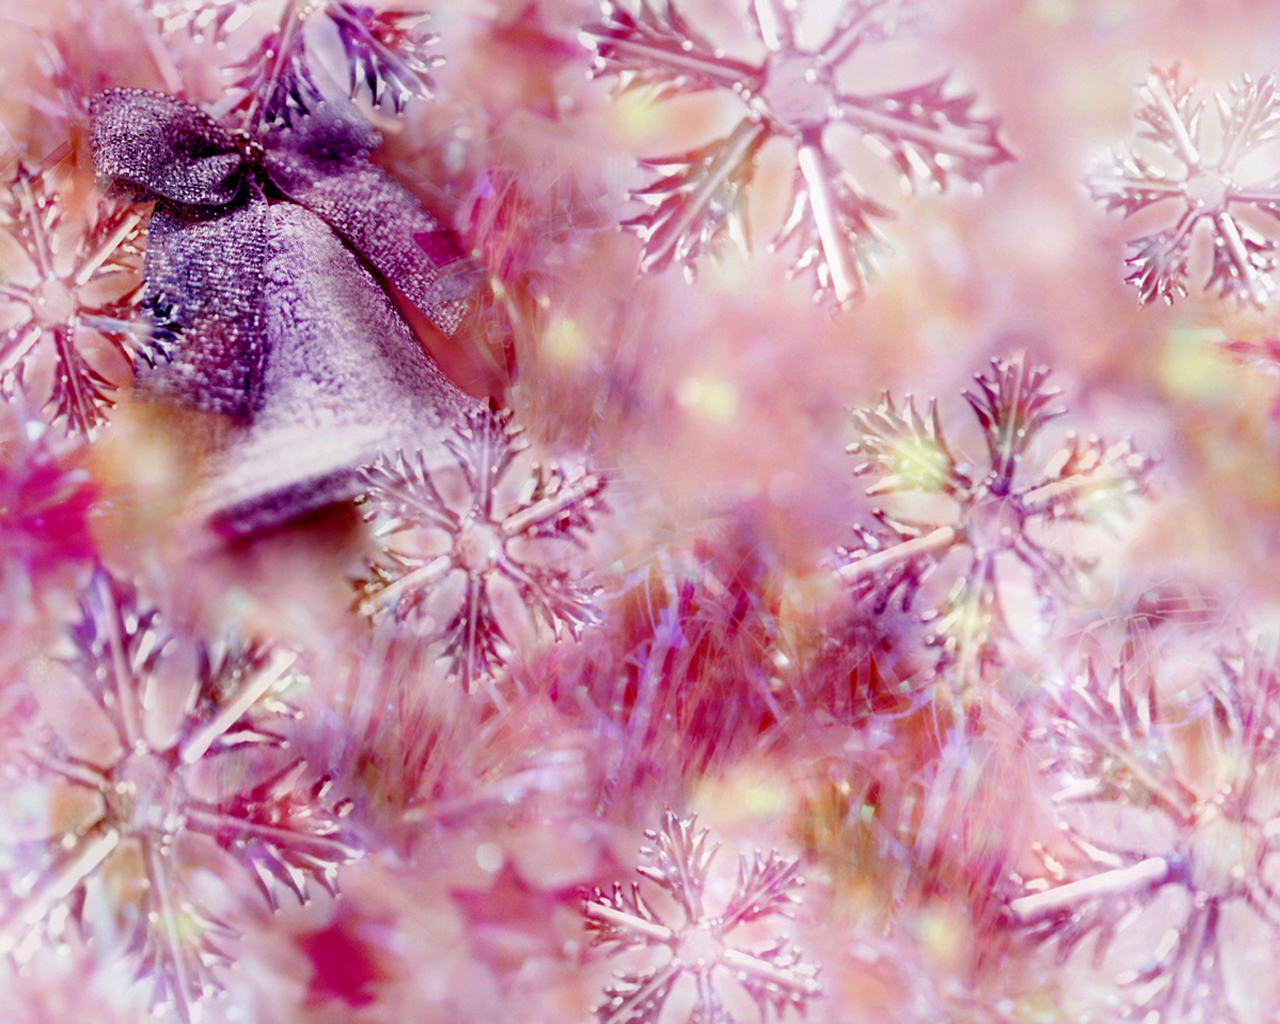 Great Christmas wallpaper in pink.